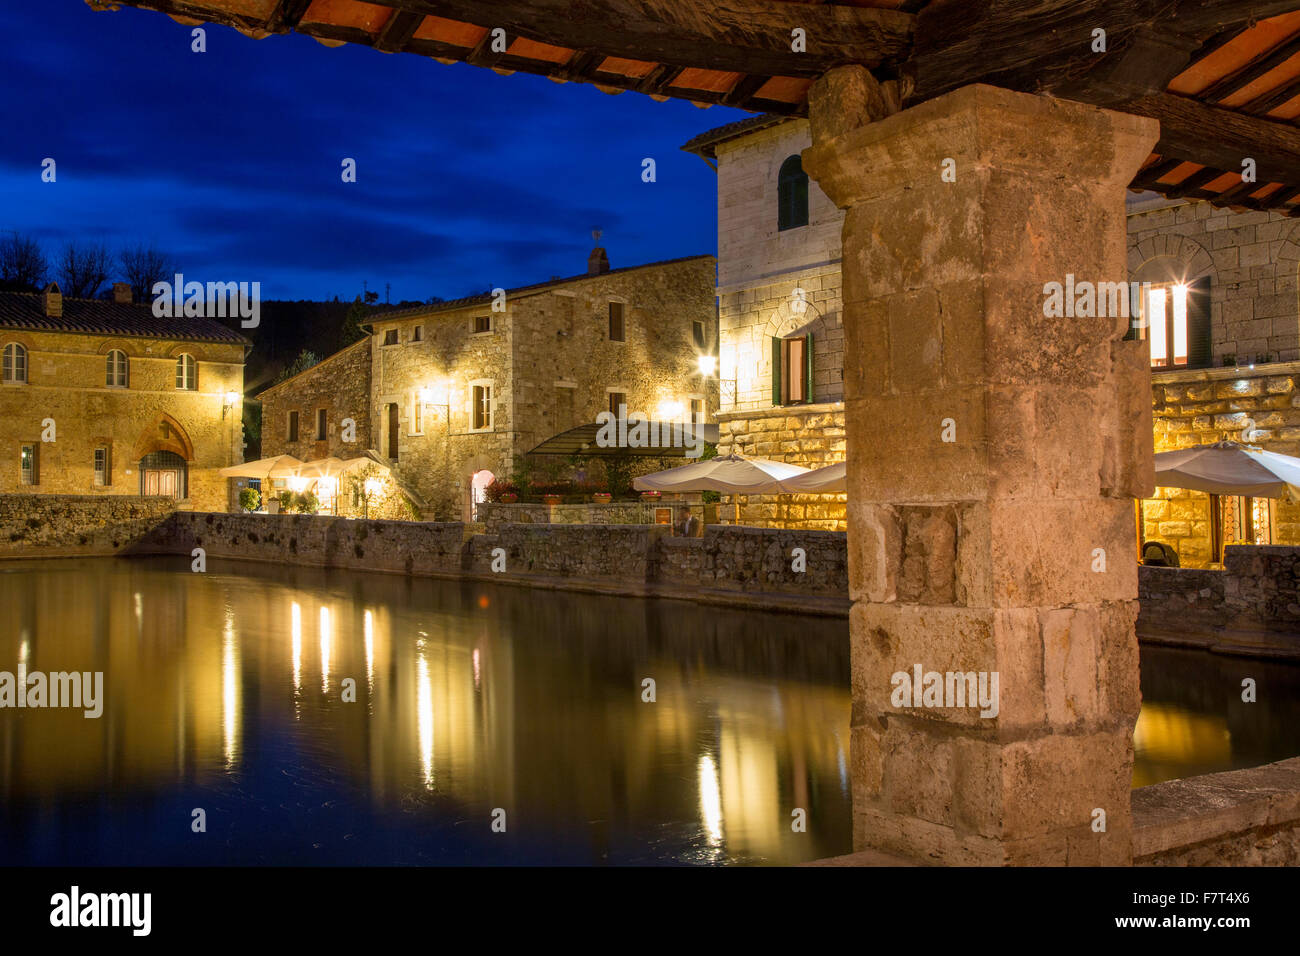 Thermal spa at Bagno Vignoni - attended by Popes, Saints and dignitaries since medeival times,  Tuscany, Italy - Stock Image